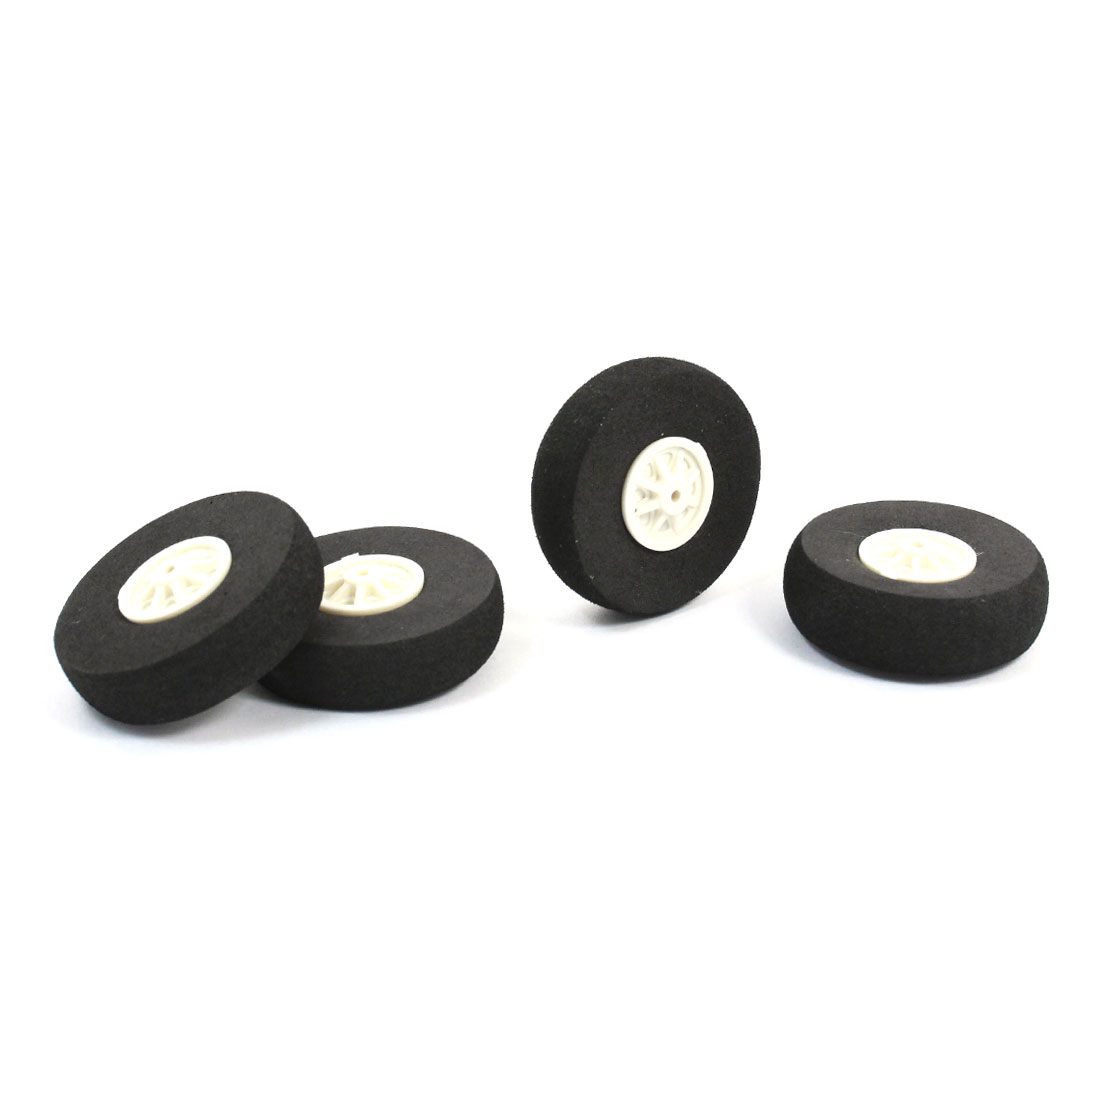 4 Pcs Black Foam Wheel 40mm Dia Spare Part for RC Aircraft Model Toy